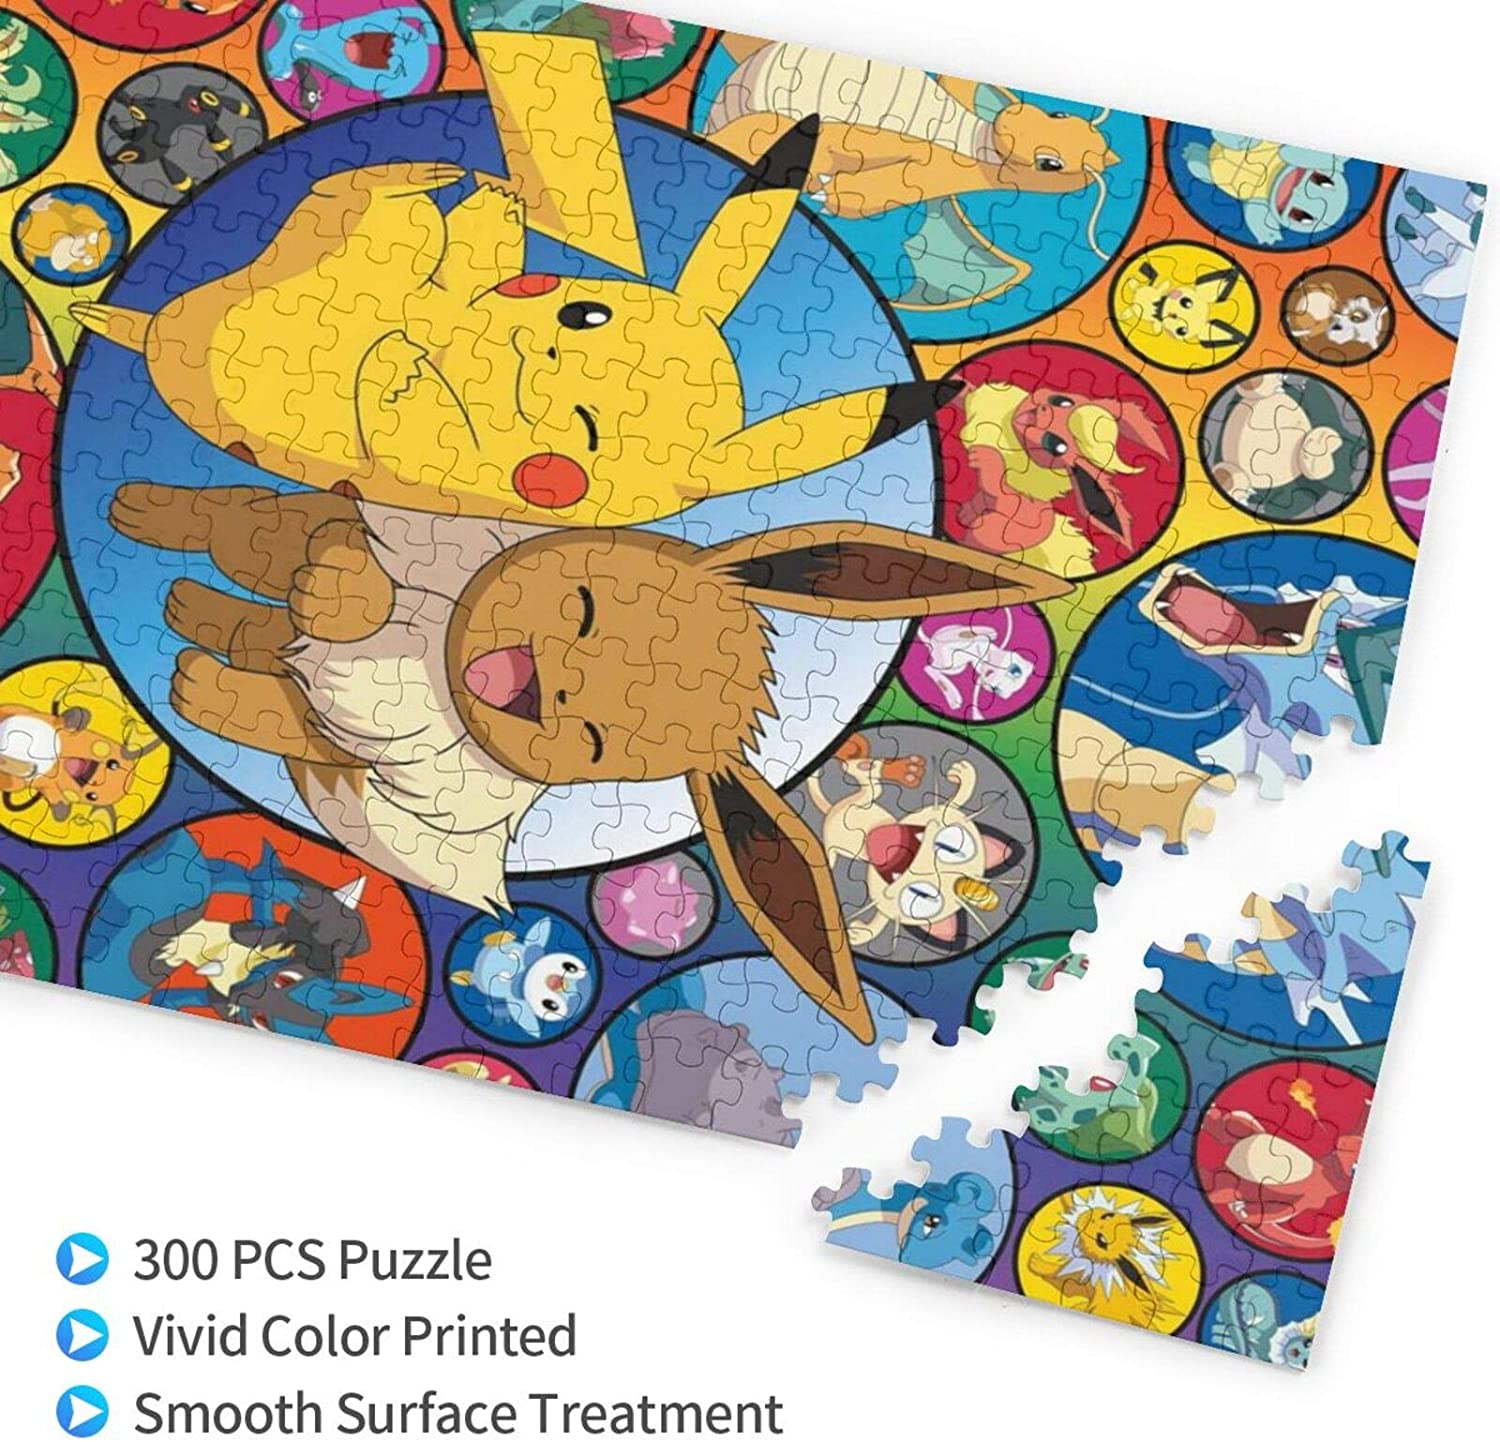 Deivor Game Jigsaw Puzzles 300 Pieces for Kids P-ok-e-mon Jigsaw Puzzle for Educational Gift Home Decor